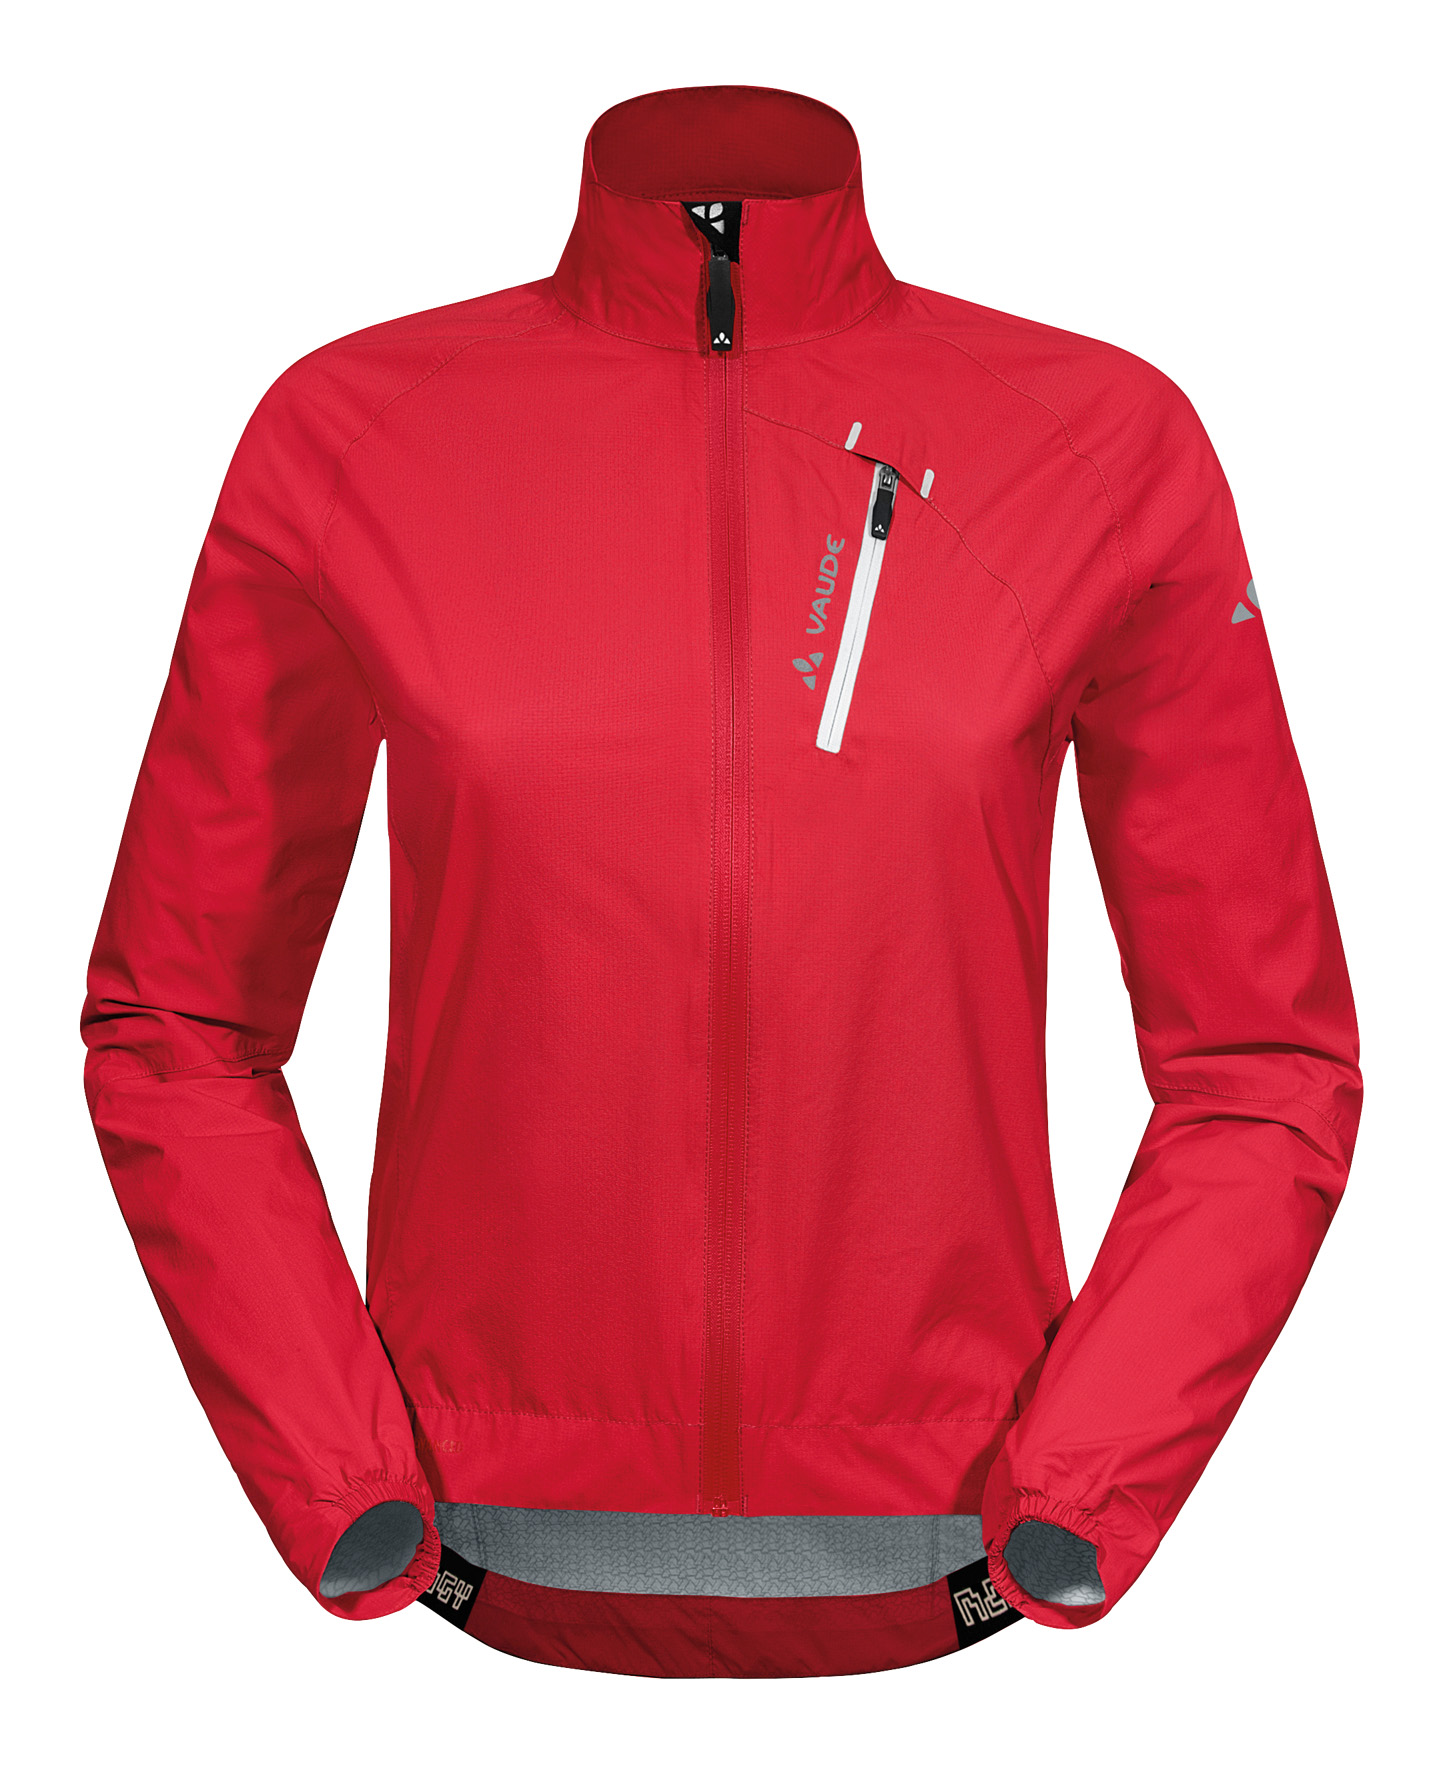 VAUDE Women´s Sky Fly Jacket II red Größe 34 - schneider-sports